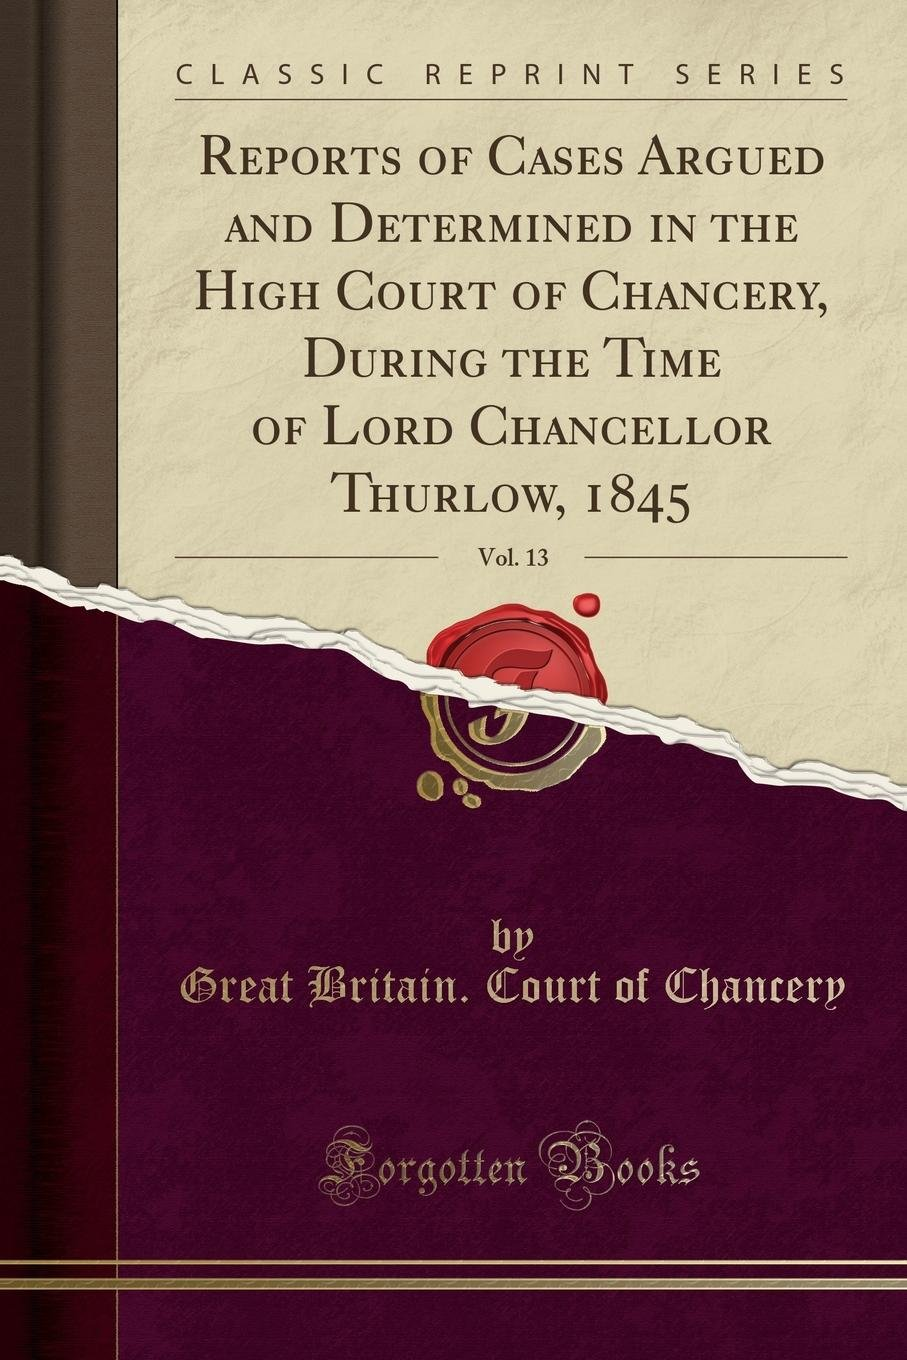 Reports of Cases Argued and Determined in the High Court of Chancery, During the Time of Lord Chancellor Thurlow, 1845, Vol. 13 (Classic Reprint) ebook